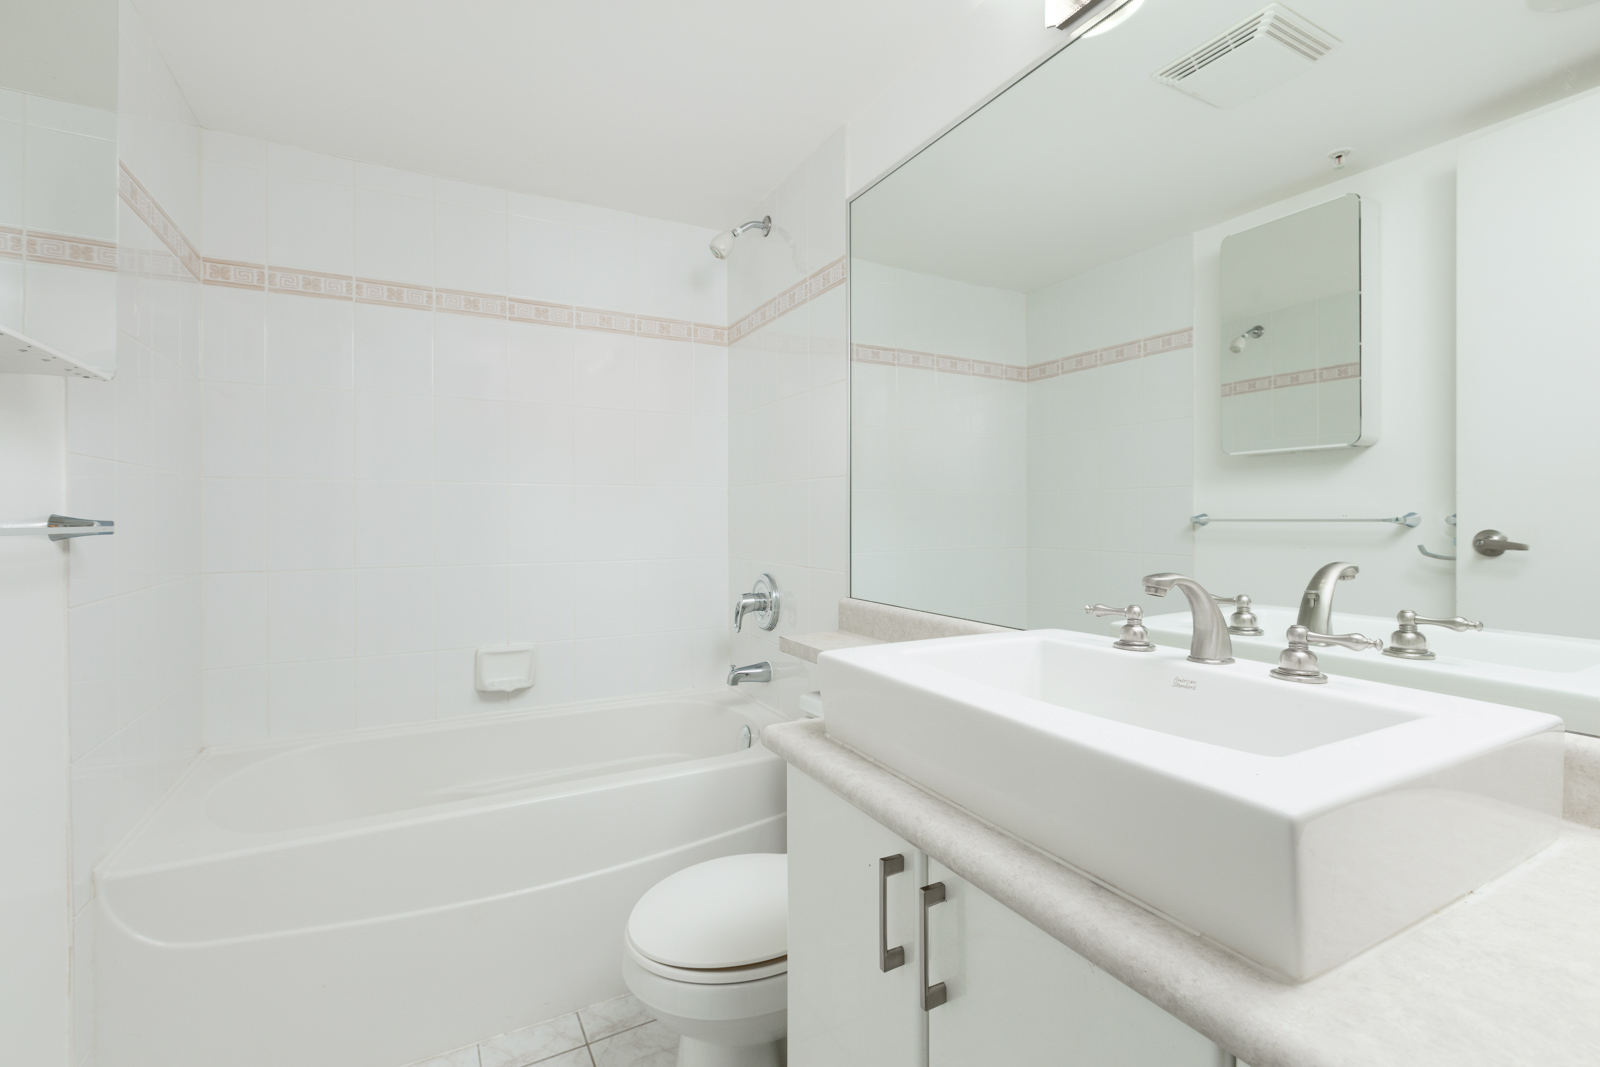 All white bathroom with sink, mirror, toilet and bath in Vancouver rental condo property in River District neighbourhood